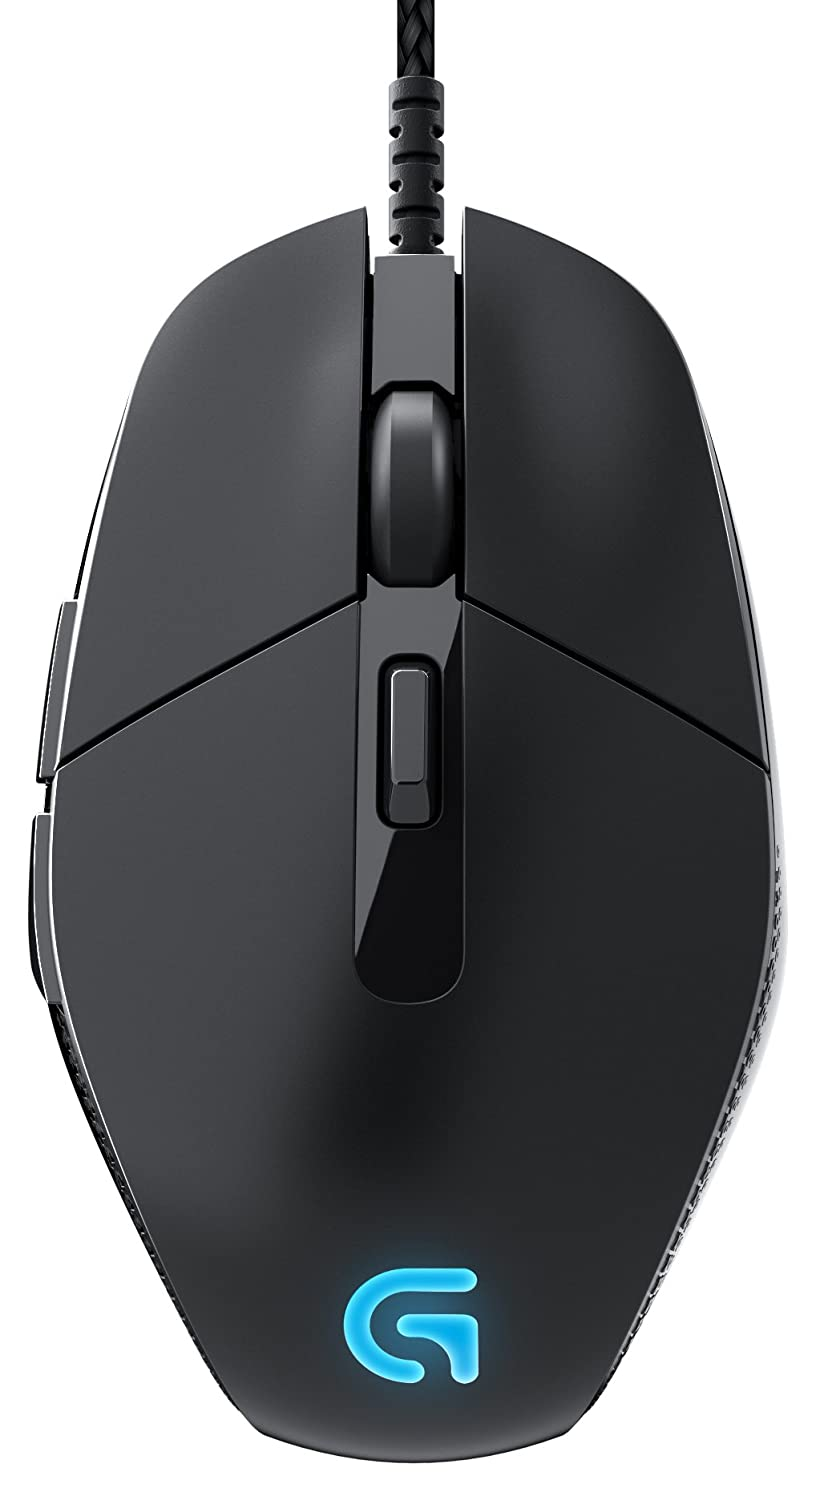 Top 10 Best Gaming Mouse Reviews in 2020 10